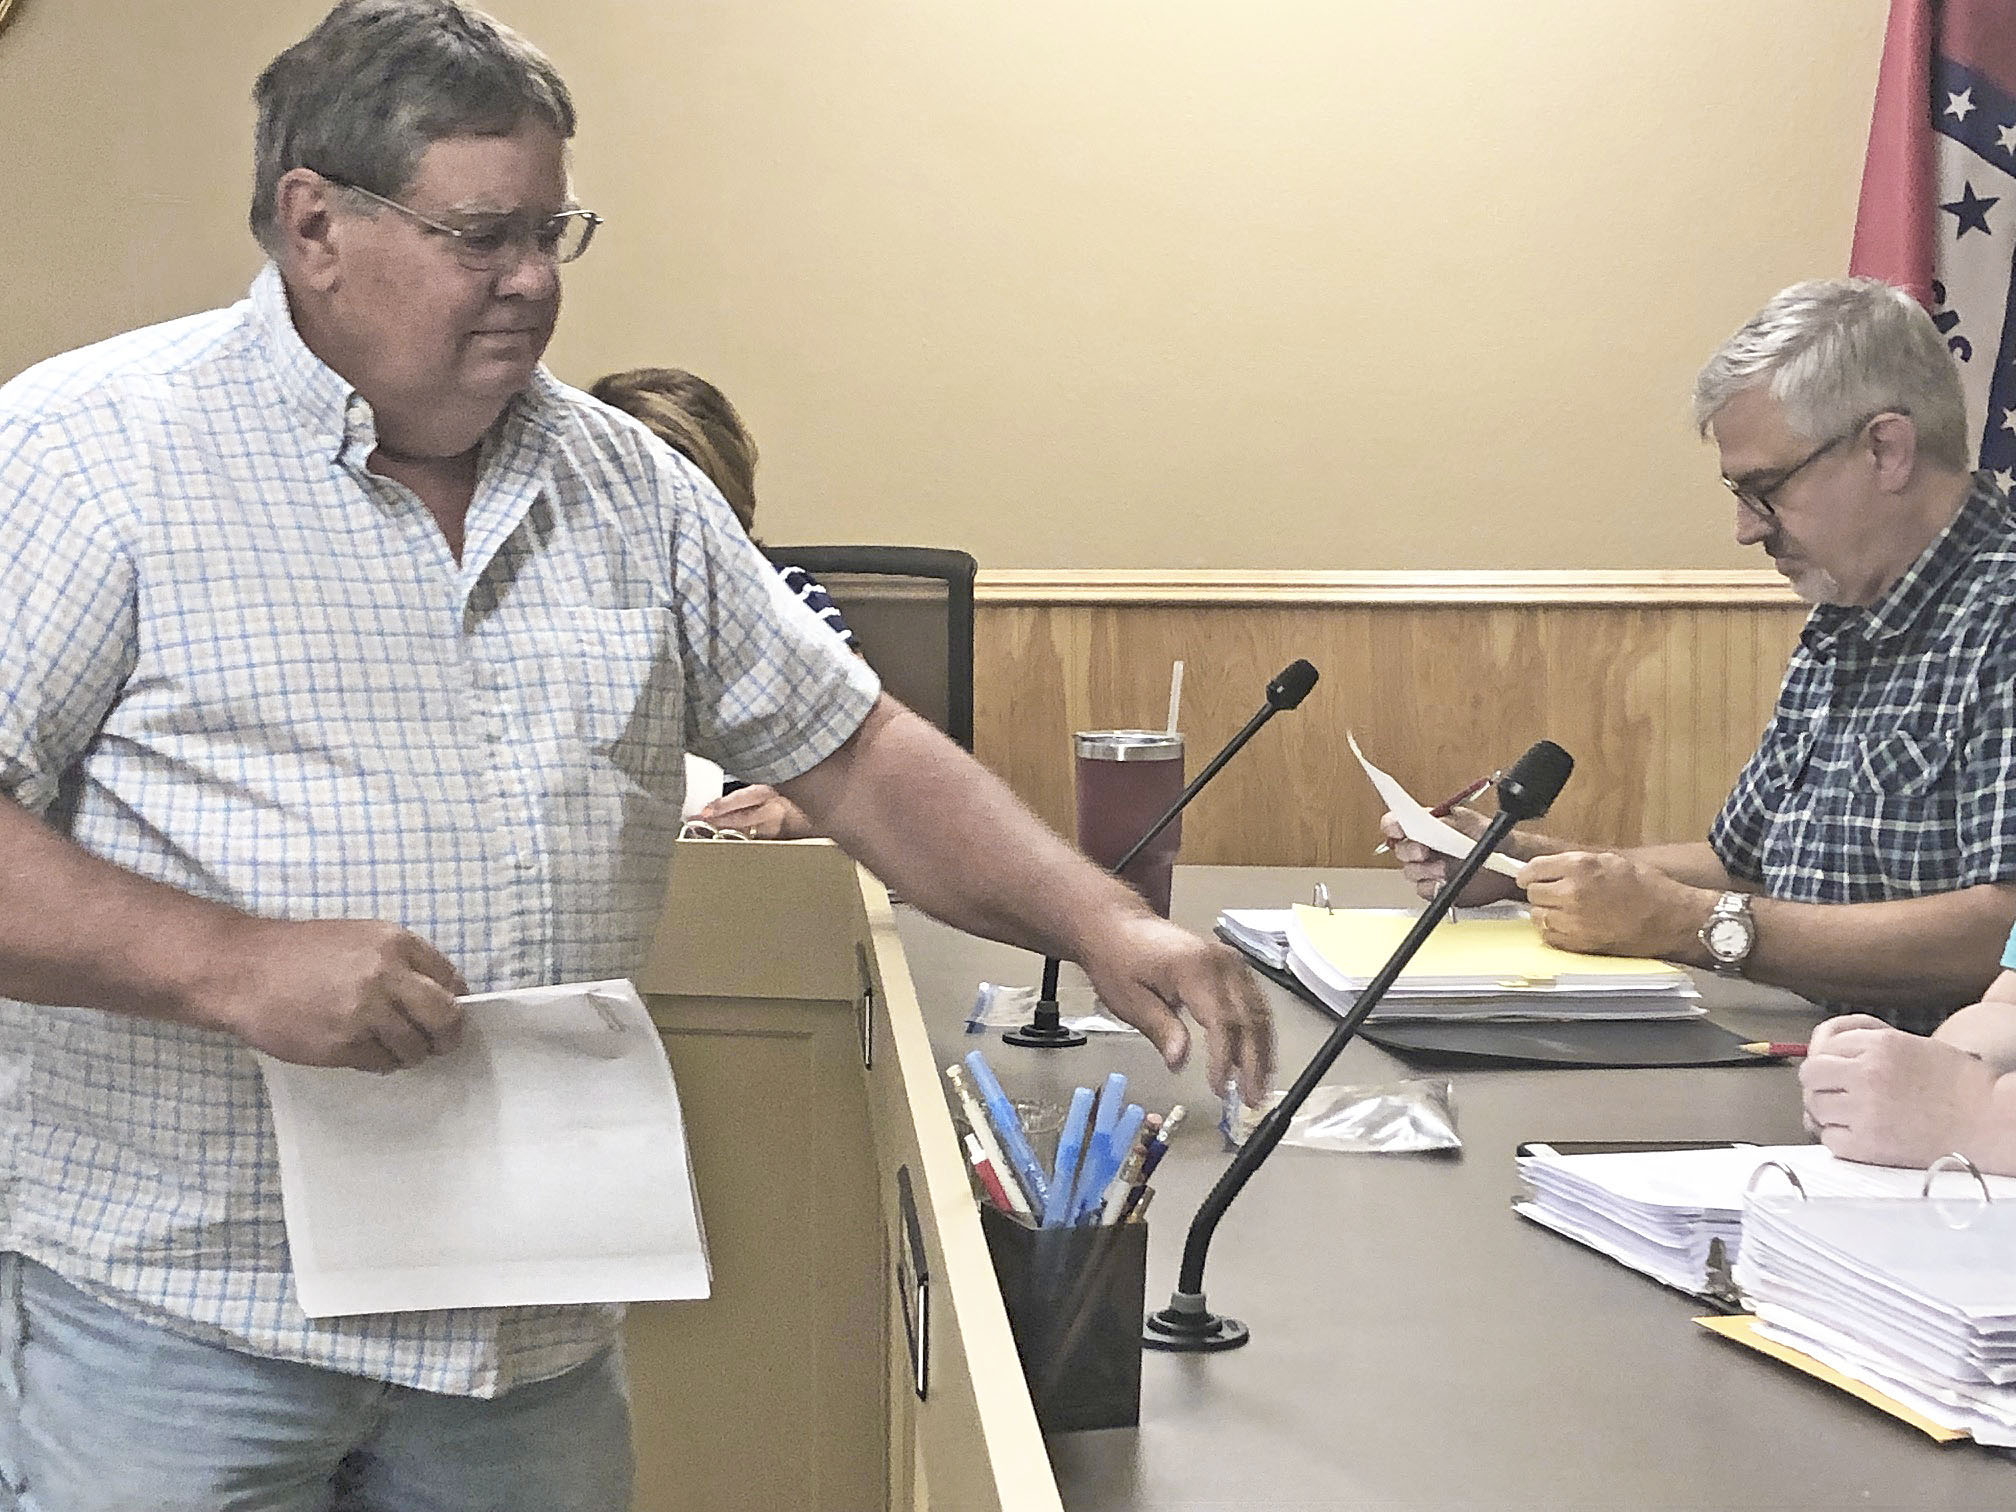 Bethel Heights resident delivers bags of sludge to council, members leave citizens without response